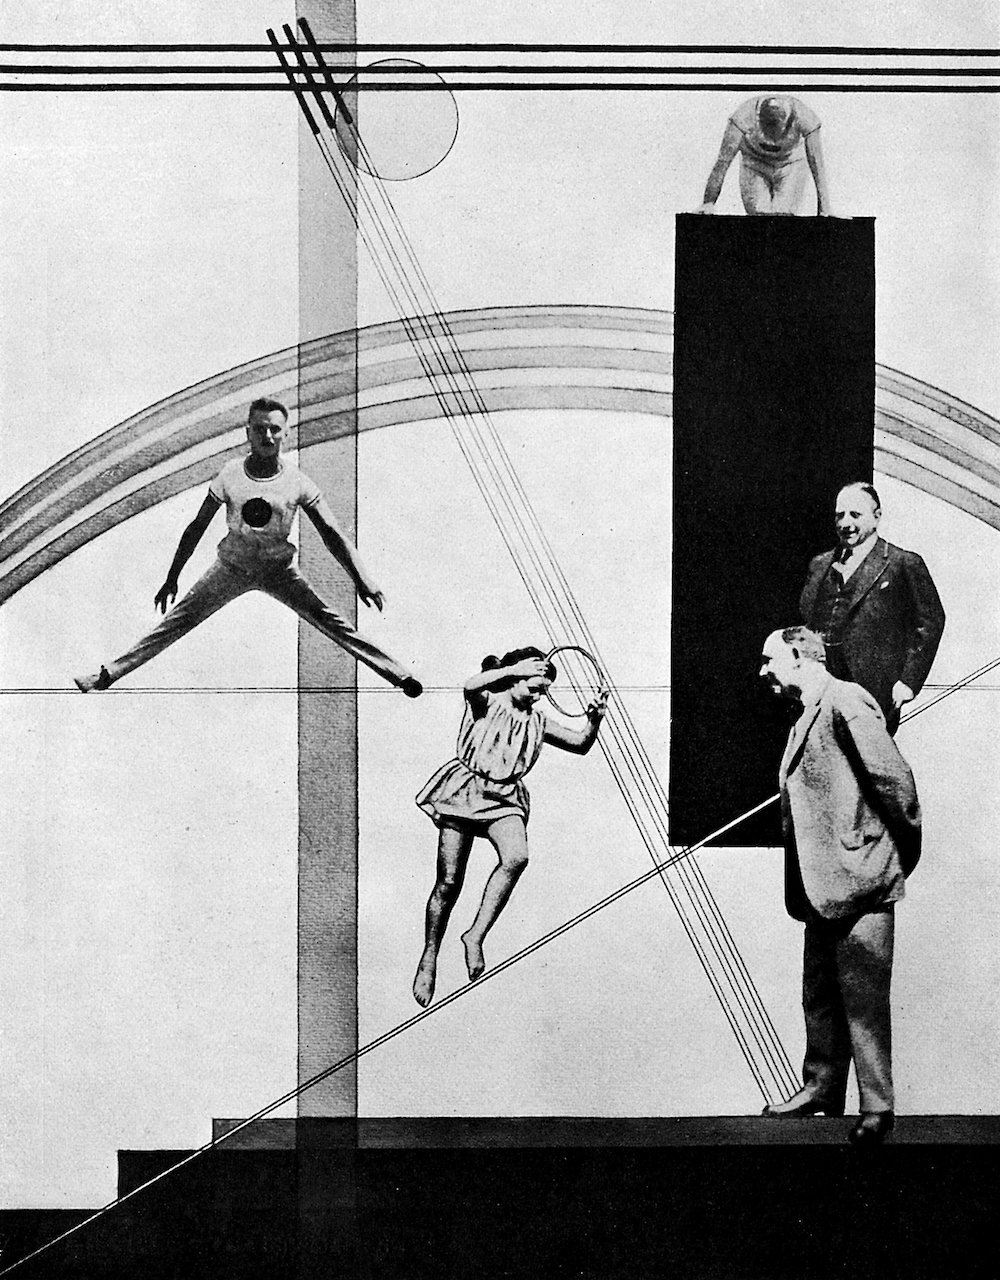 From 'Painting Photography Film' by Moholy-Nagy, edited by Lars Müller © Lars Müller